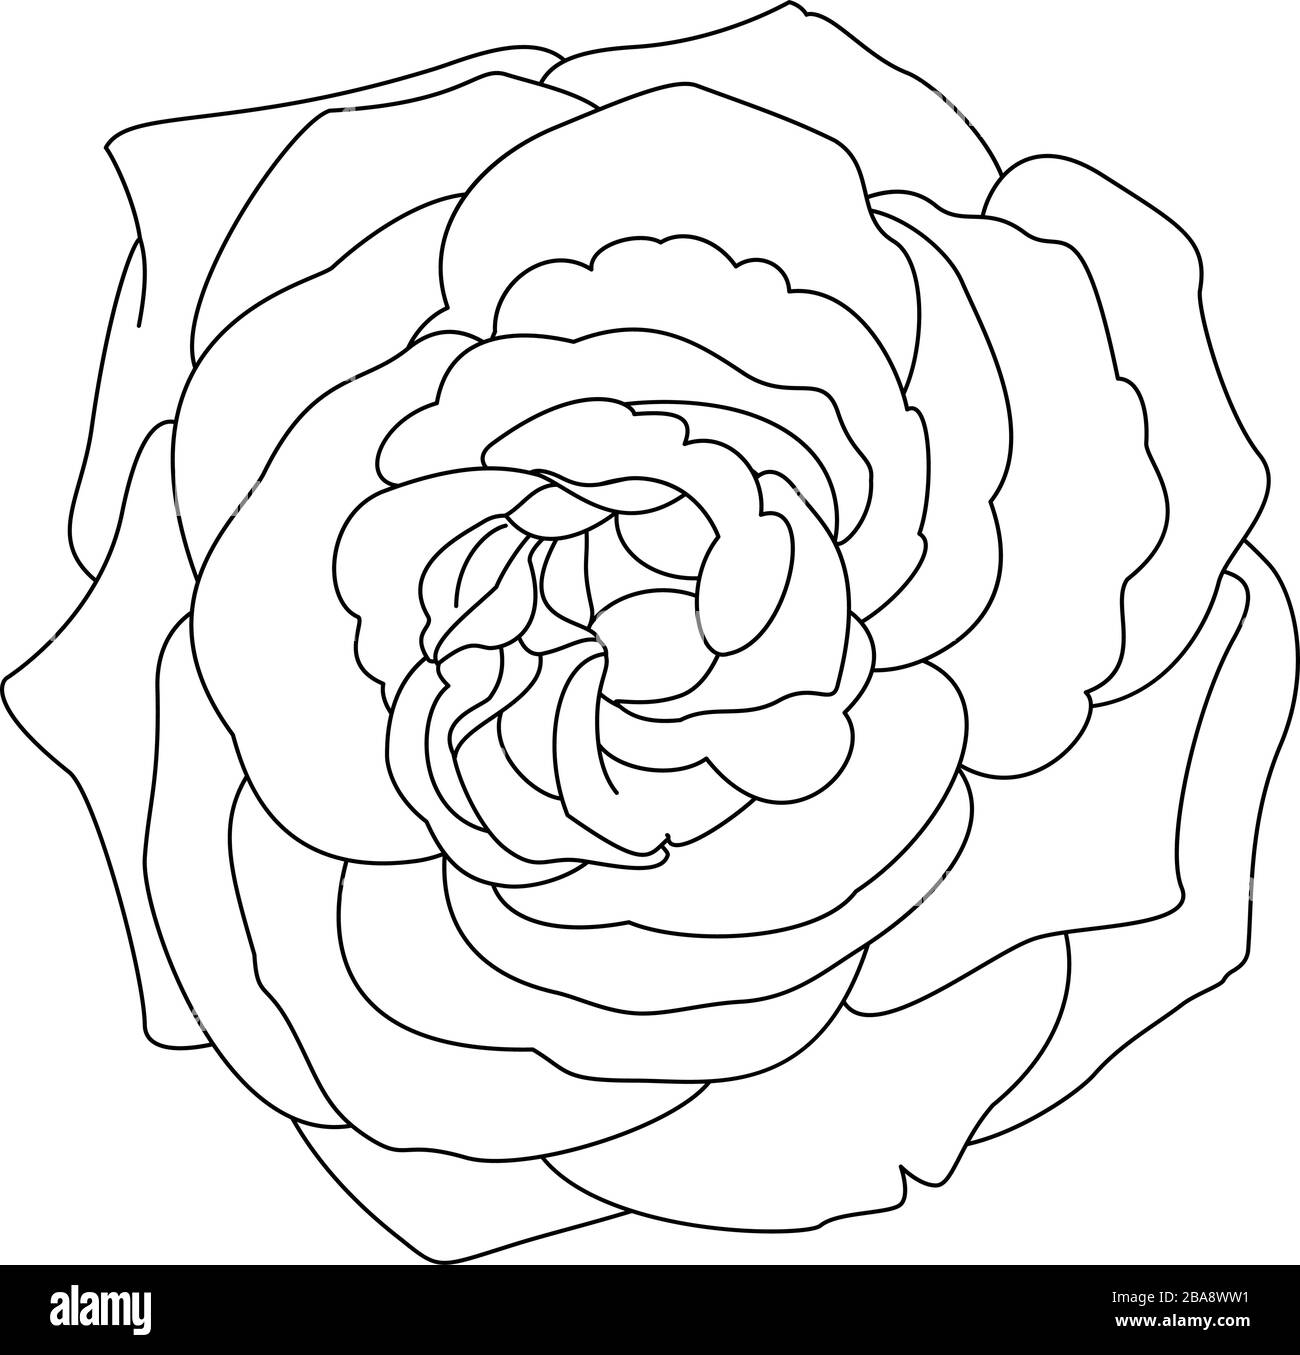 Coloring Page Rose Flower Immagini E Fotos Stock Alamy